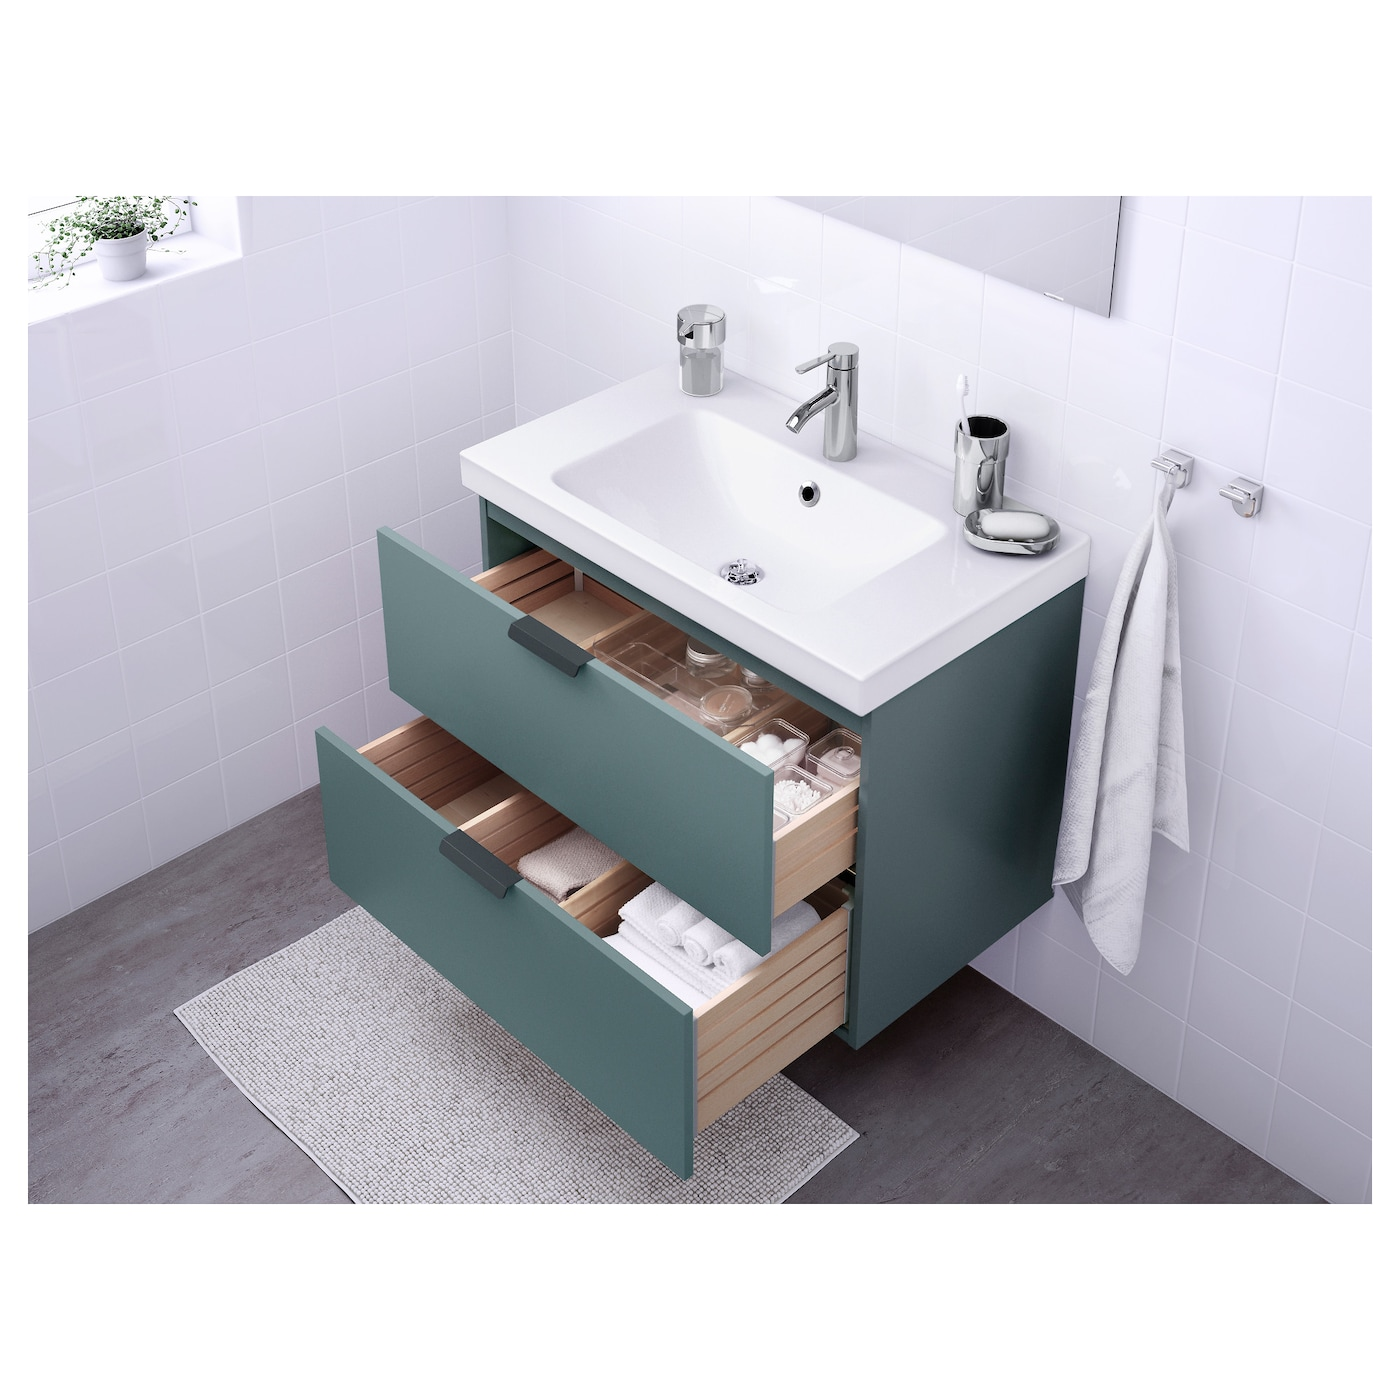 odensvik godmorgon wash stand with 2 drawers grey turquoise 80x49x64 cm ikea. Black Bedroom Furniture Sets. Home Design Ideas